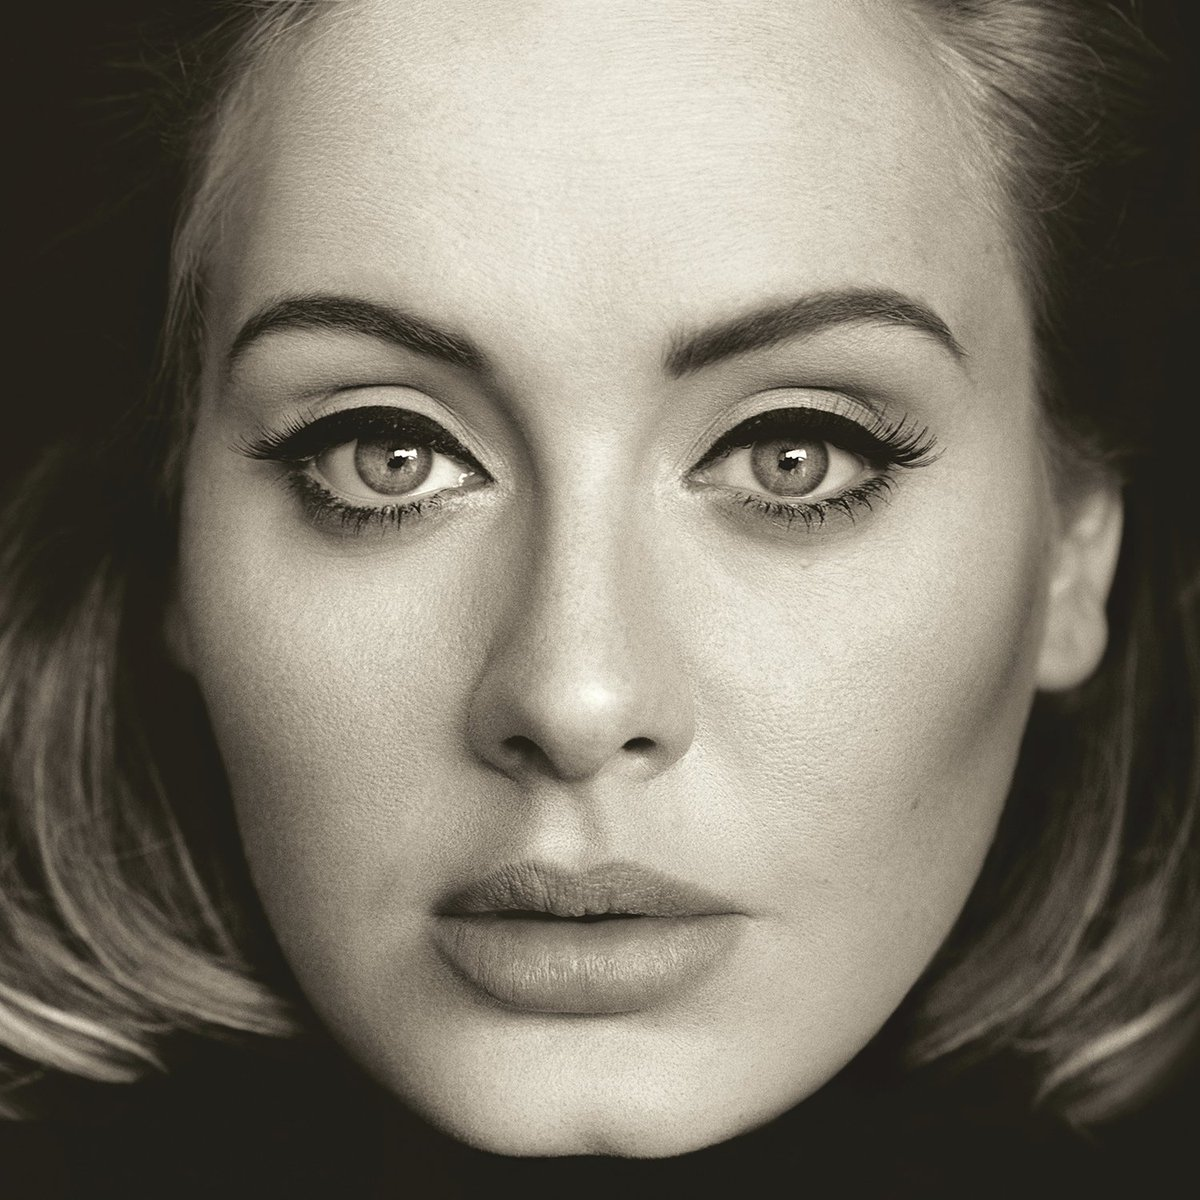 .@Adele's new album 25 is now available at @BestBuy! Visit a store or purchase here https://t.co/DADvIngQDu #ad https://t.co/VdsyysDJ78